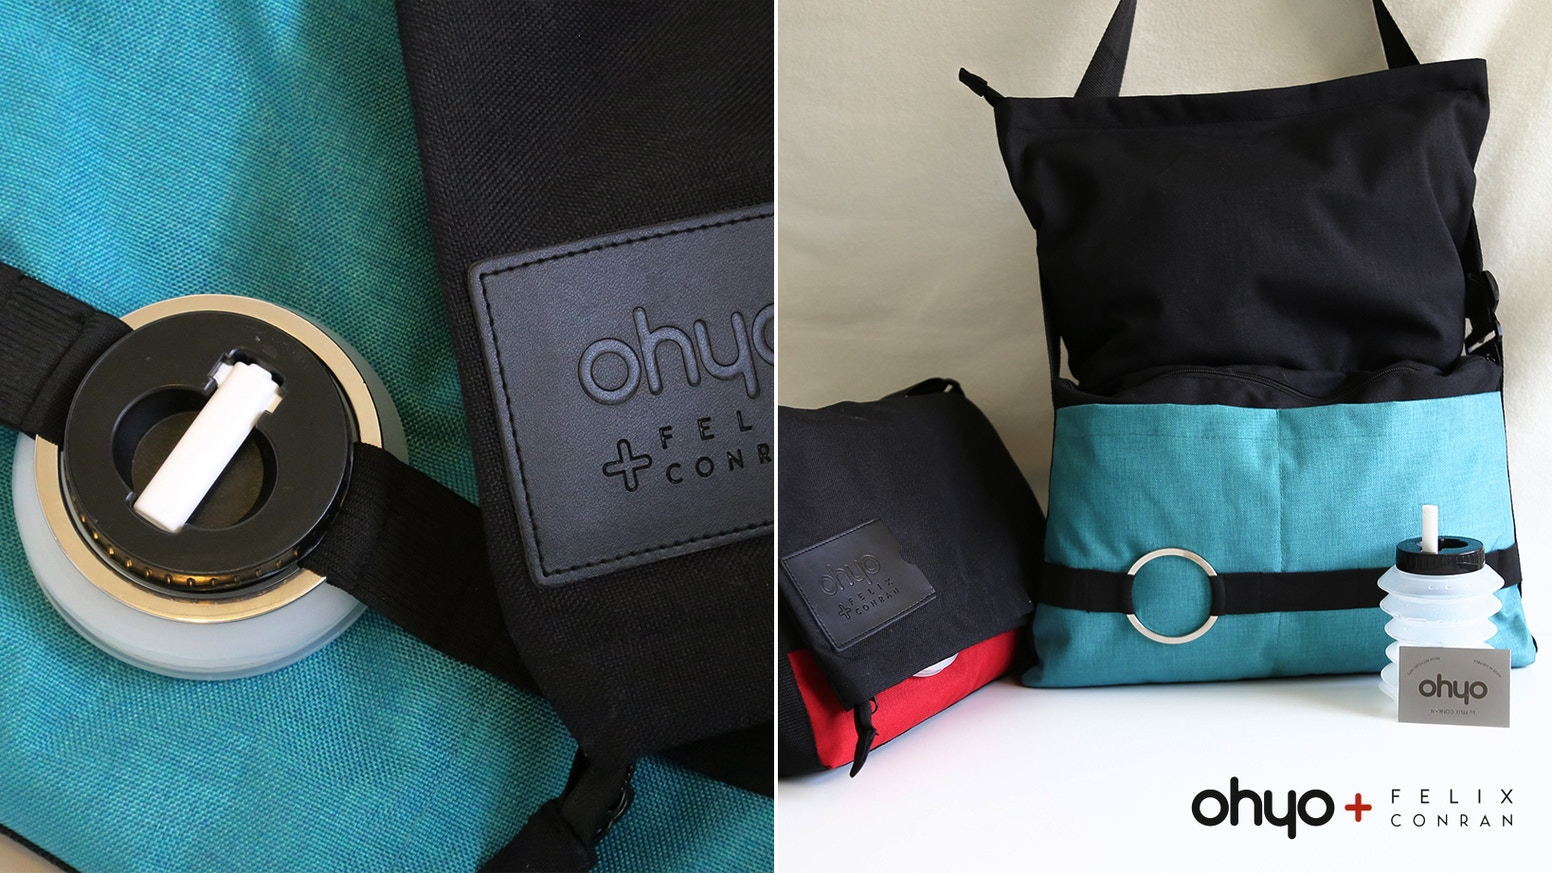 Ohyo 2Bag holds your daily essentials expanding for more. Ohyo Bottle collapses to fit in a bag or pocket making tap water convenient.